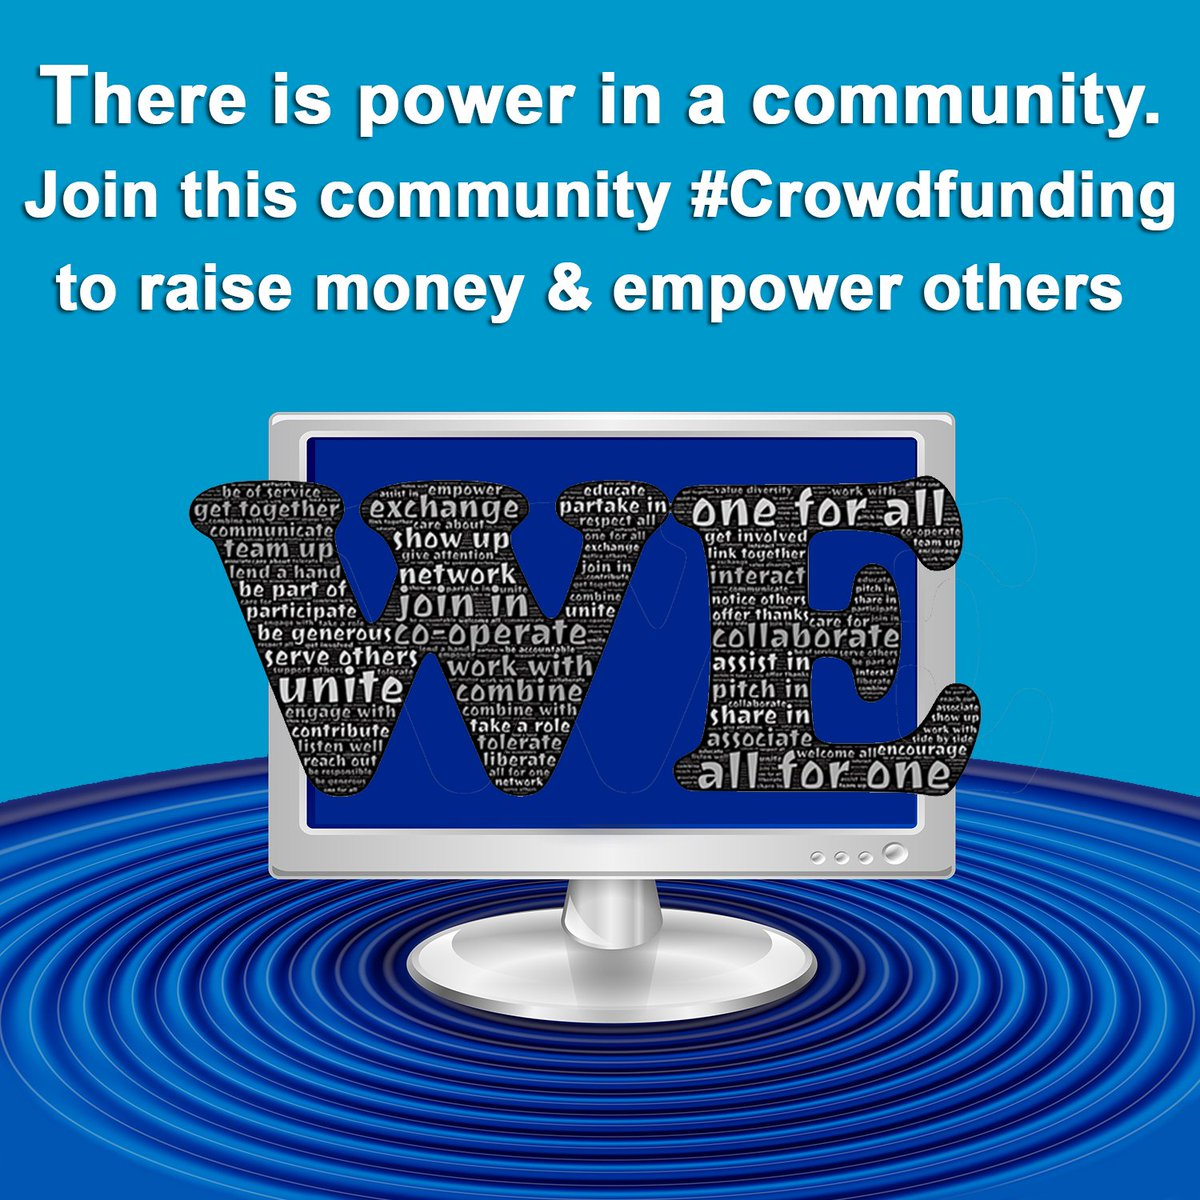 There is power in a community #CrowdFunding    https://t.co/HAUwwlWqJr https://t.co/jOBG22Fpwz